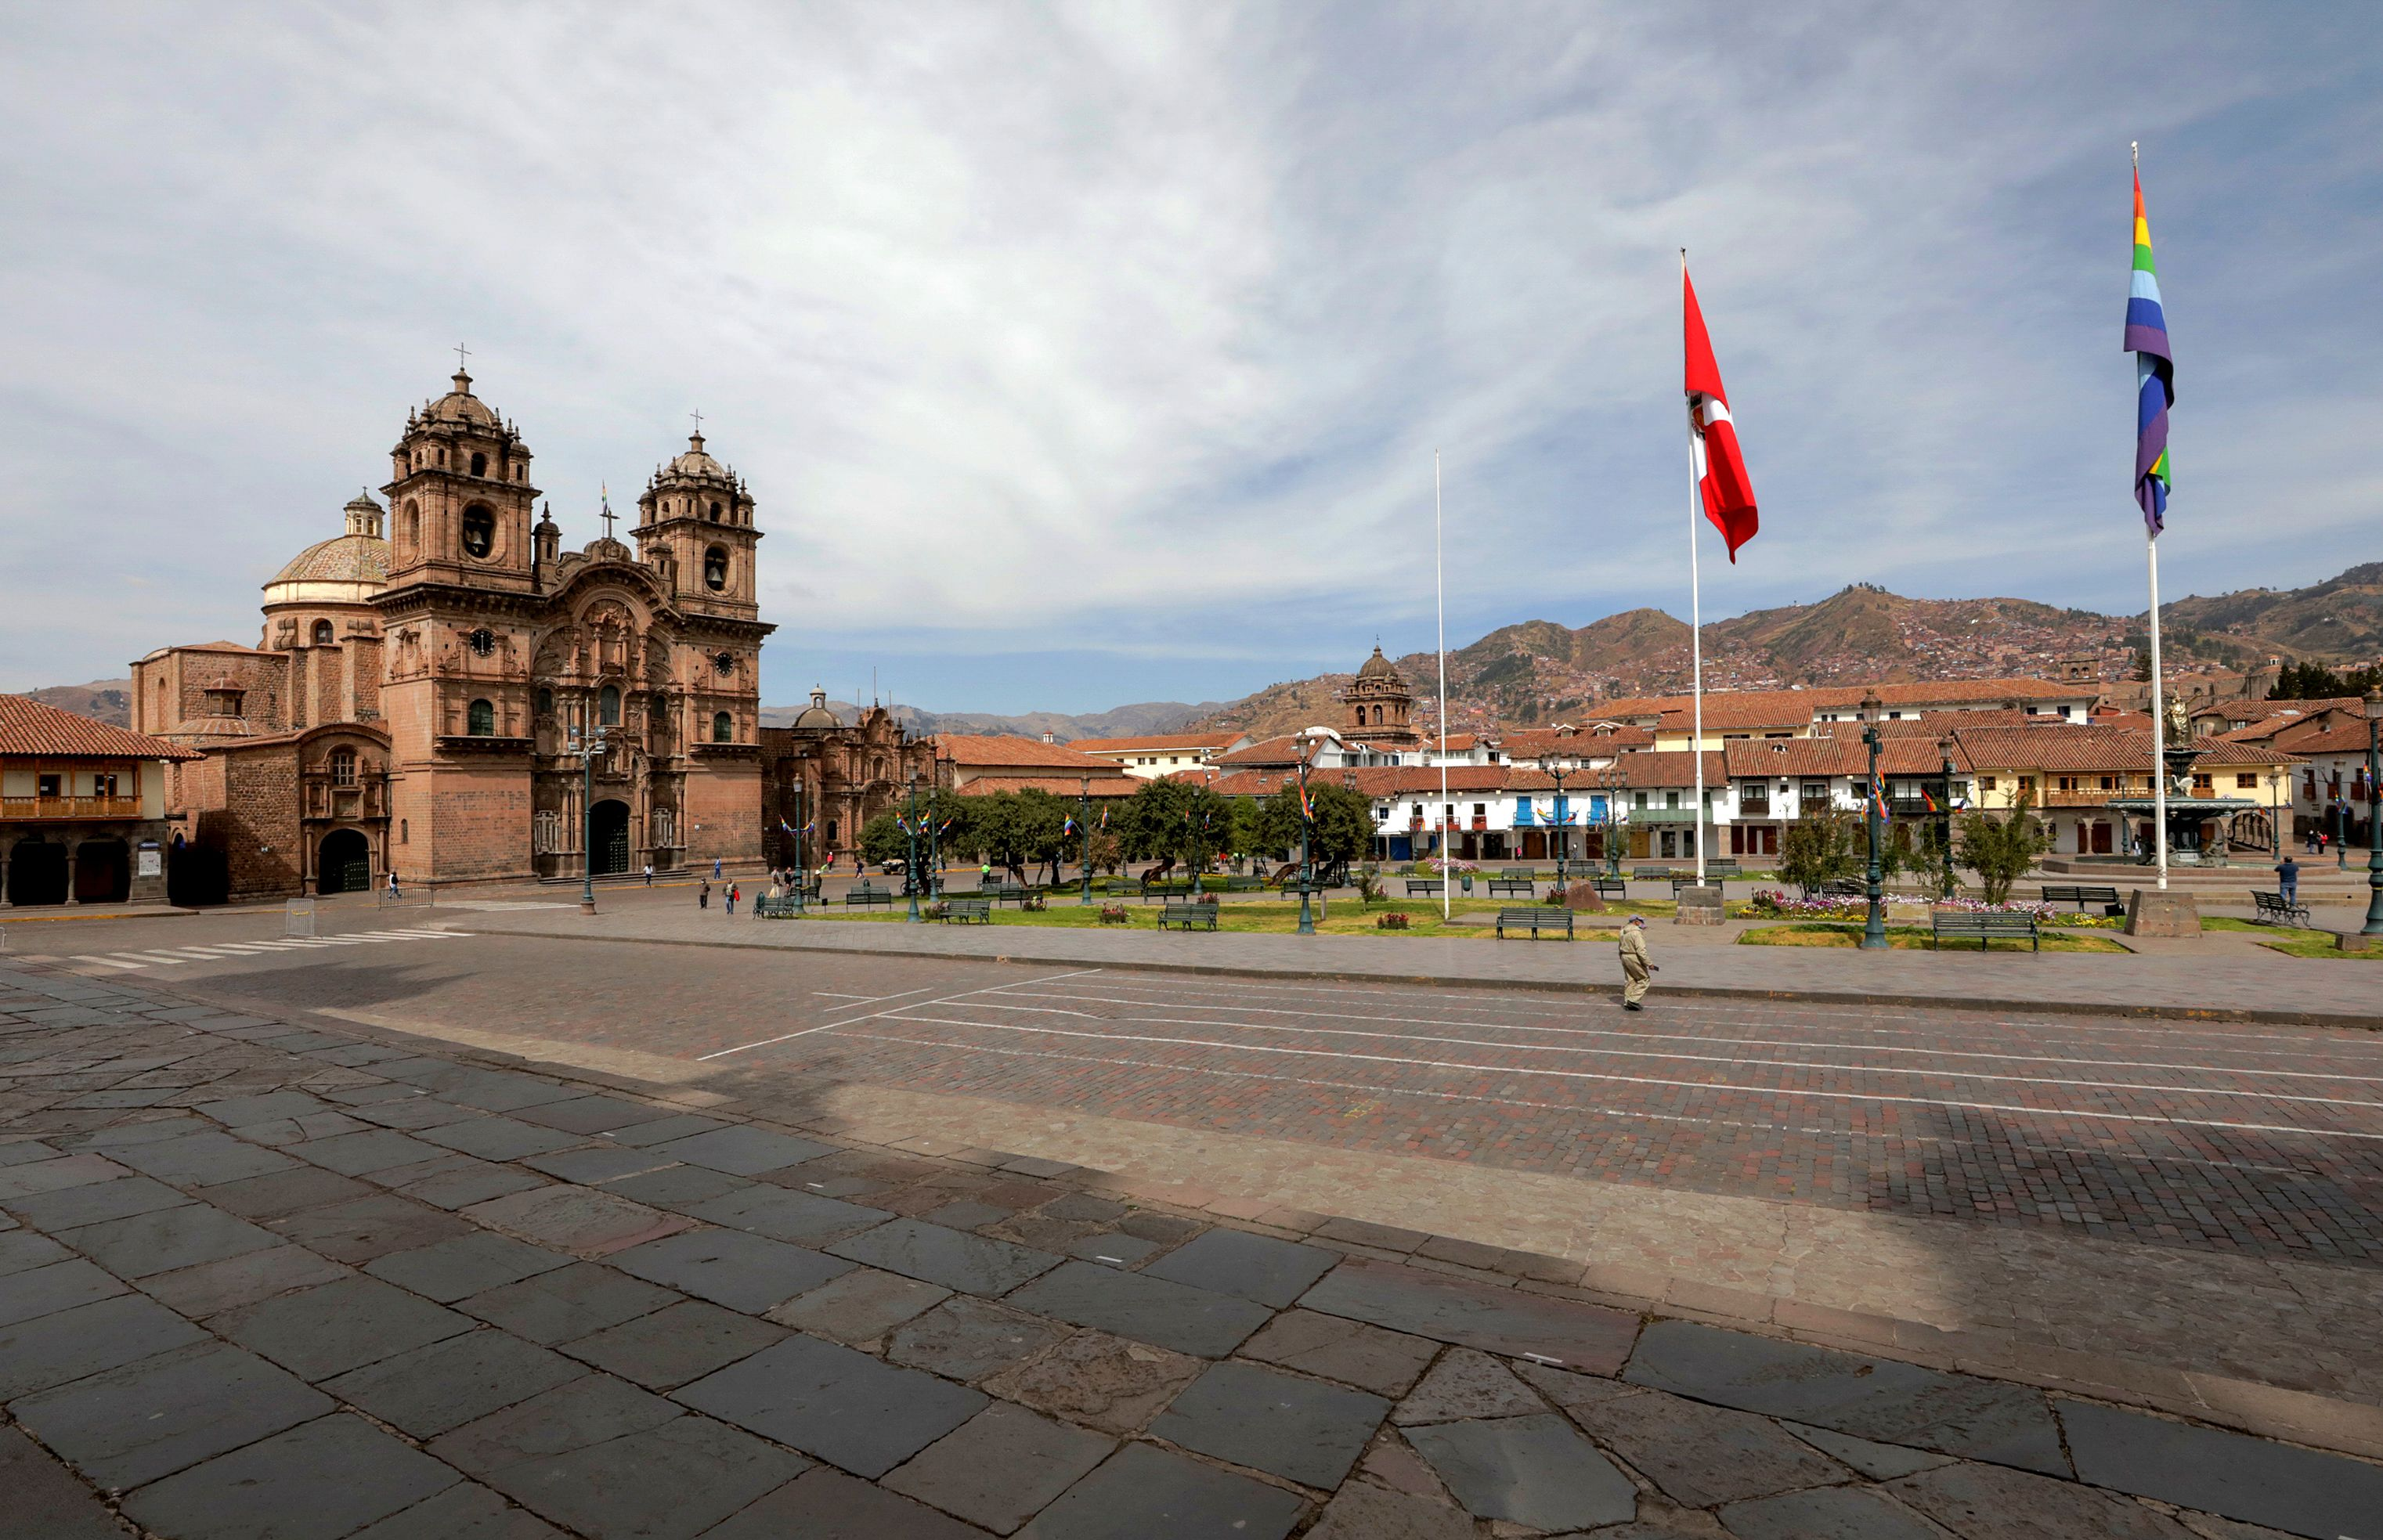 The empty main square in Cuzco, Peru, is seen on June 24, where only a symbolic version of an ancient Inca ritual took place as part of the traditional Sun Festival. The festival normally brings together over 80,000 people every year, but this year it took place without audience due to restrictions amid the pandemic.